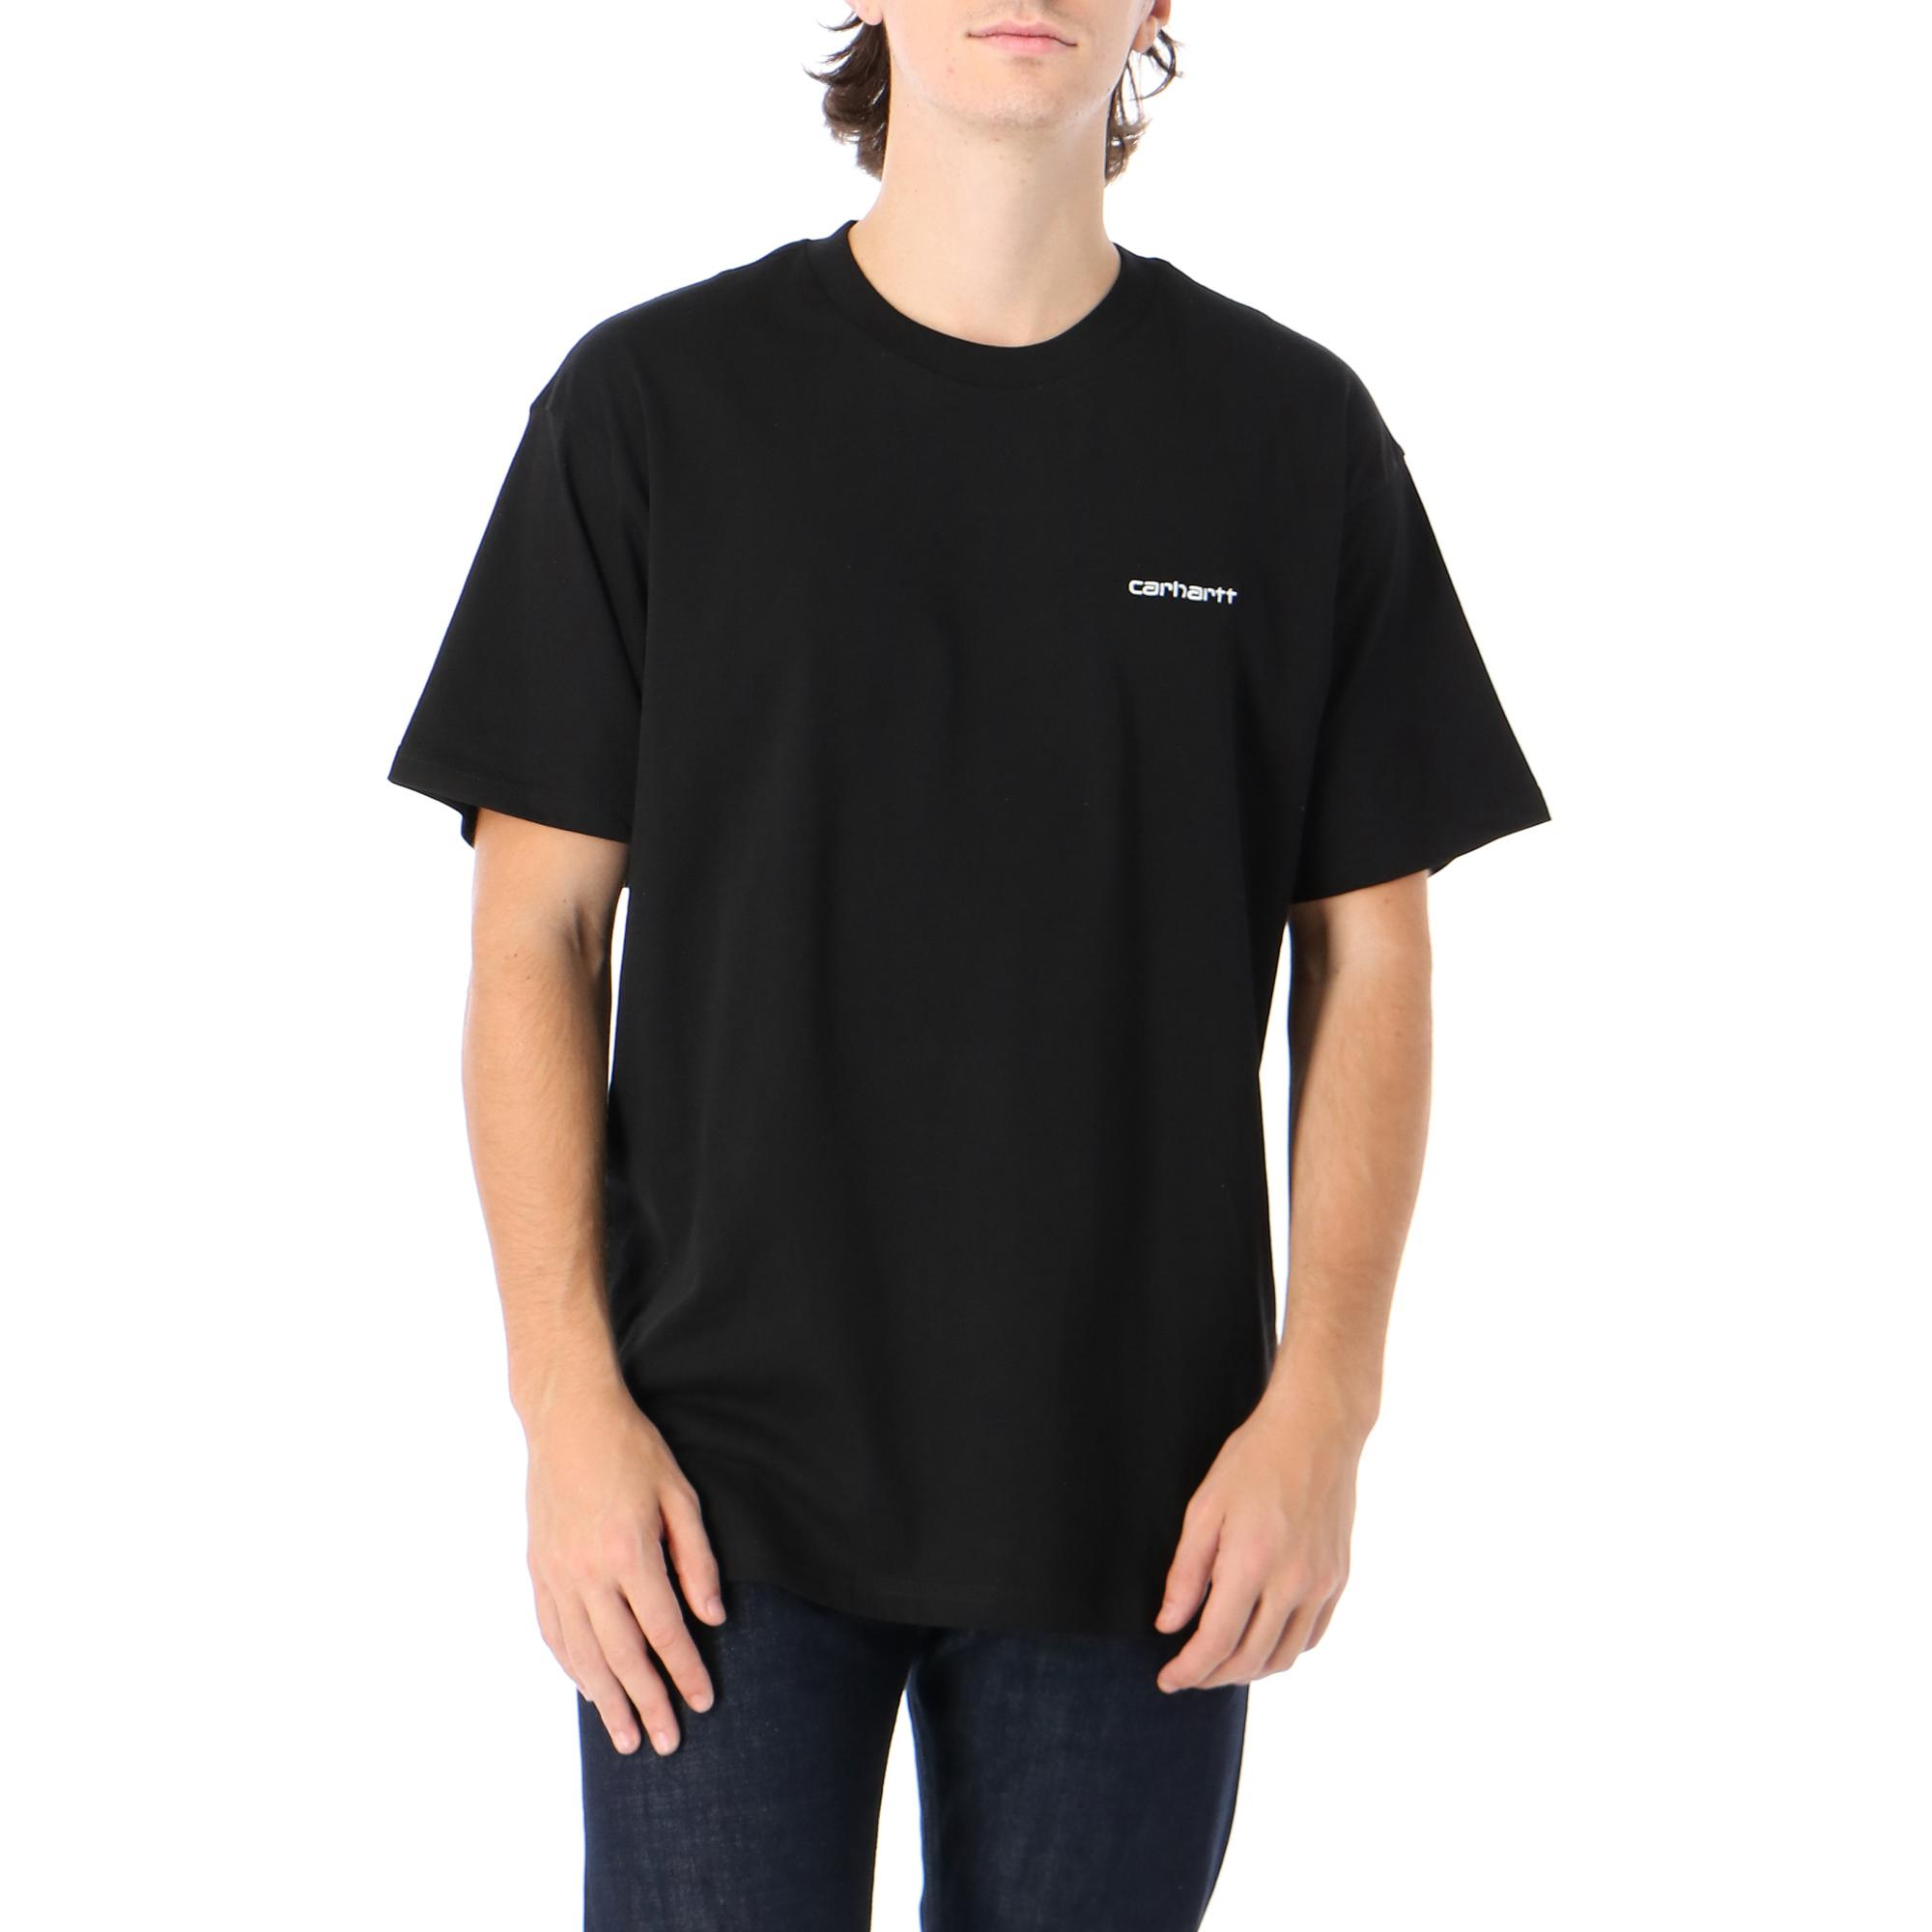 Carhartt S/s Script Embroidery T-shirt Black white